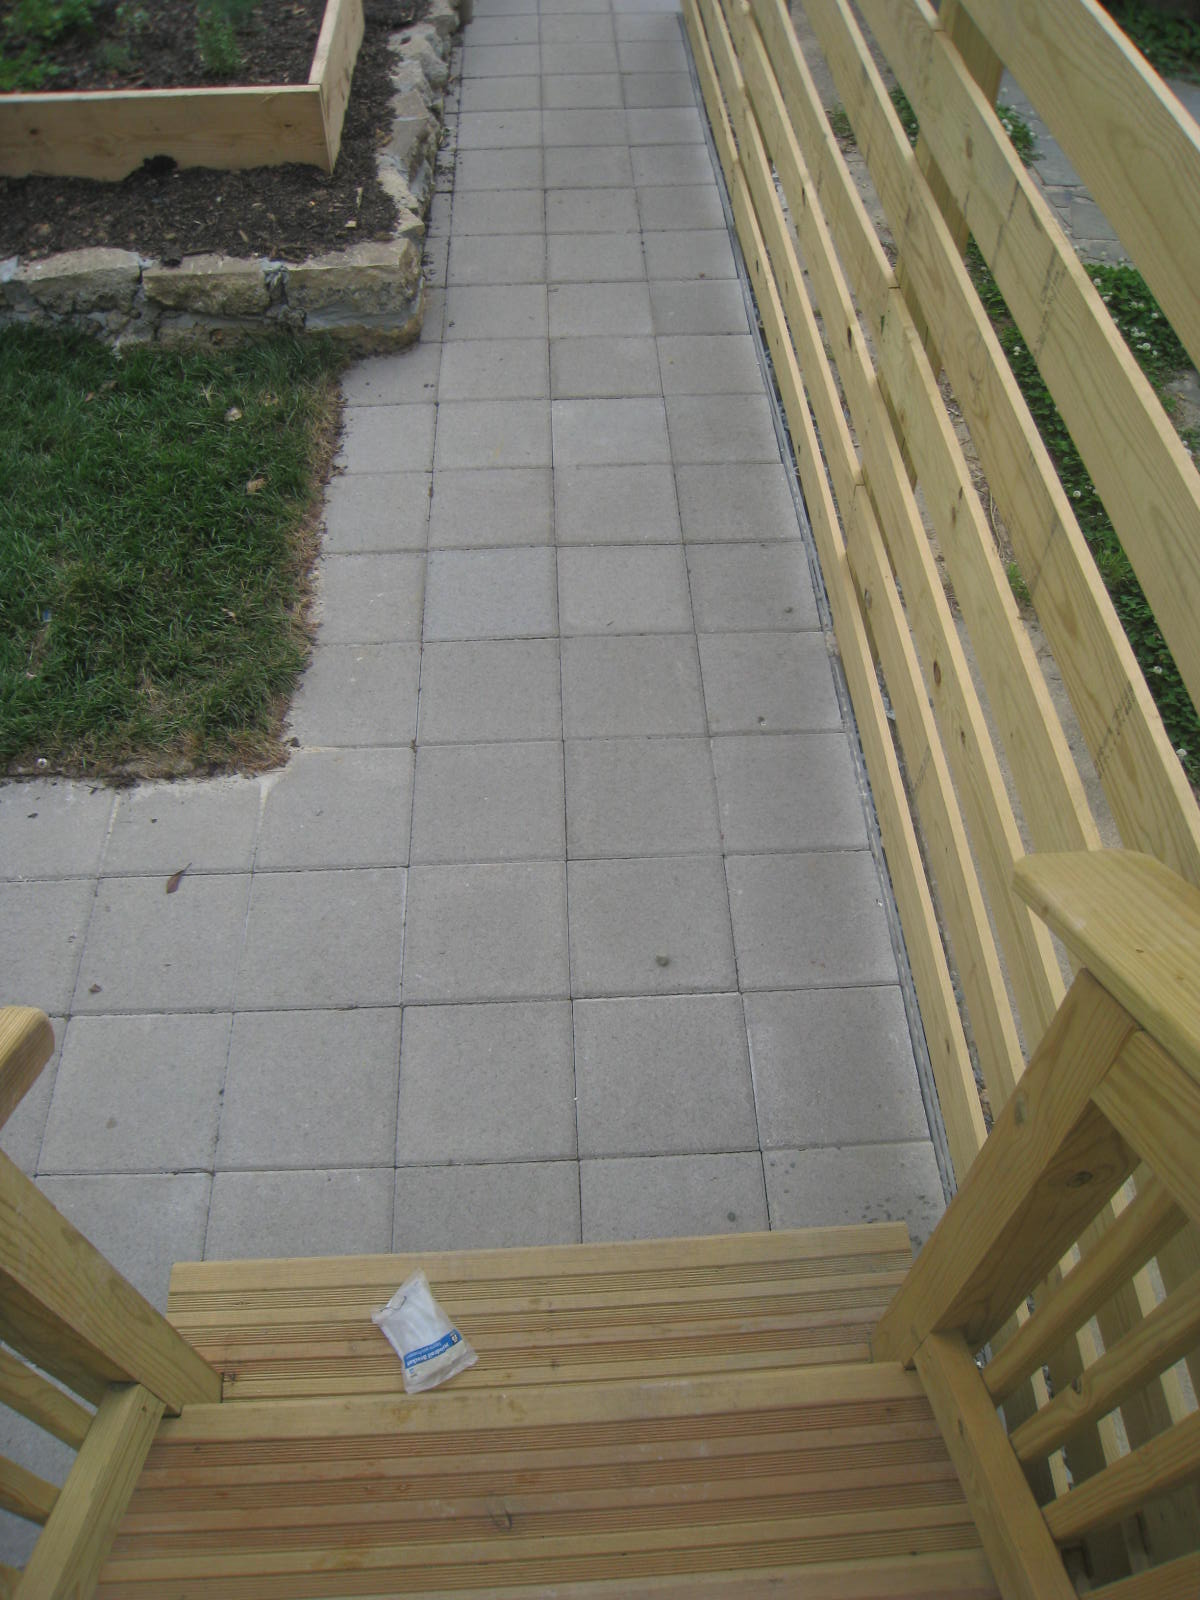 This paver path is pervious and allows water to infiltrate into the ground